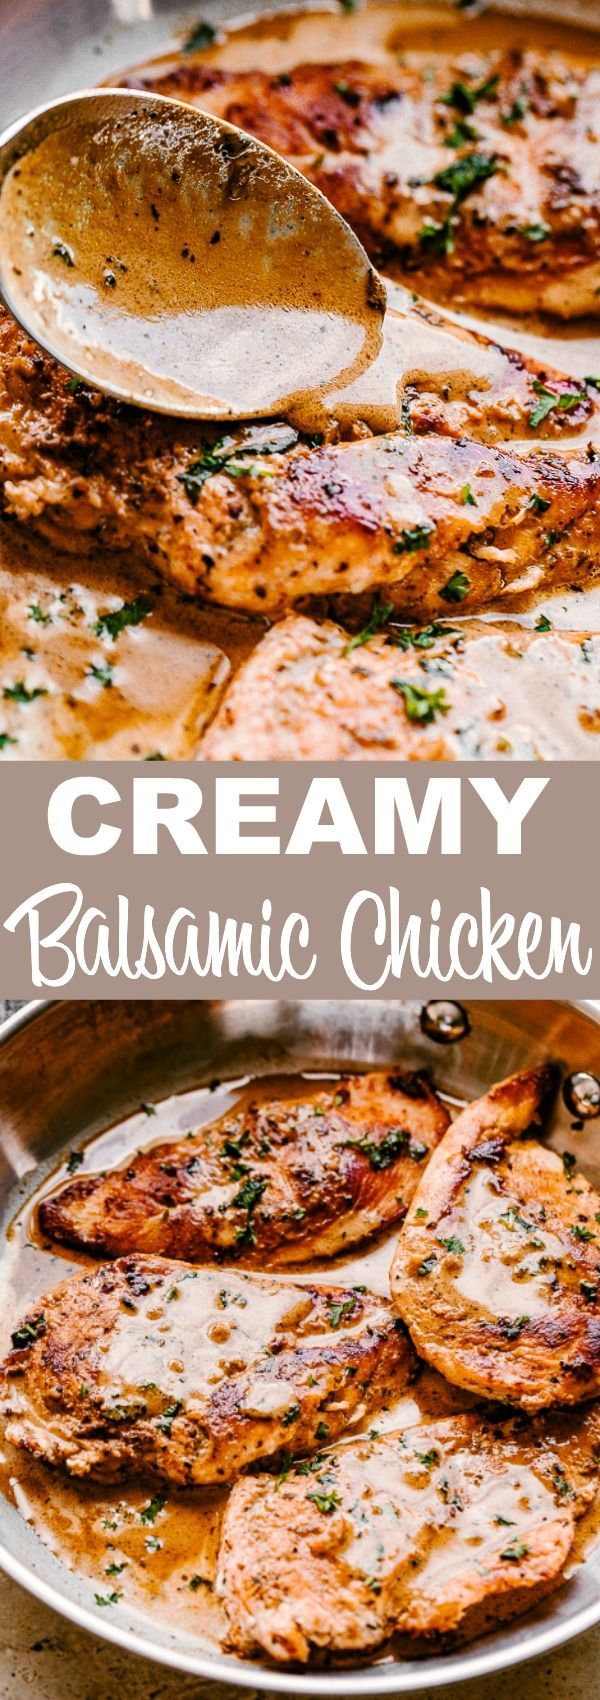 Juicy Skillet Balsamic Chicken Breasts | Easy Weeknight Recipes -   25 dinner recipes for family main dishes chicken breasts ideas